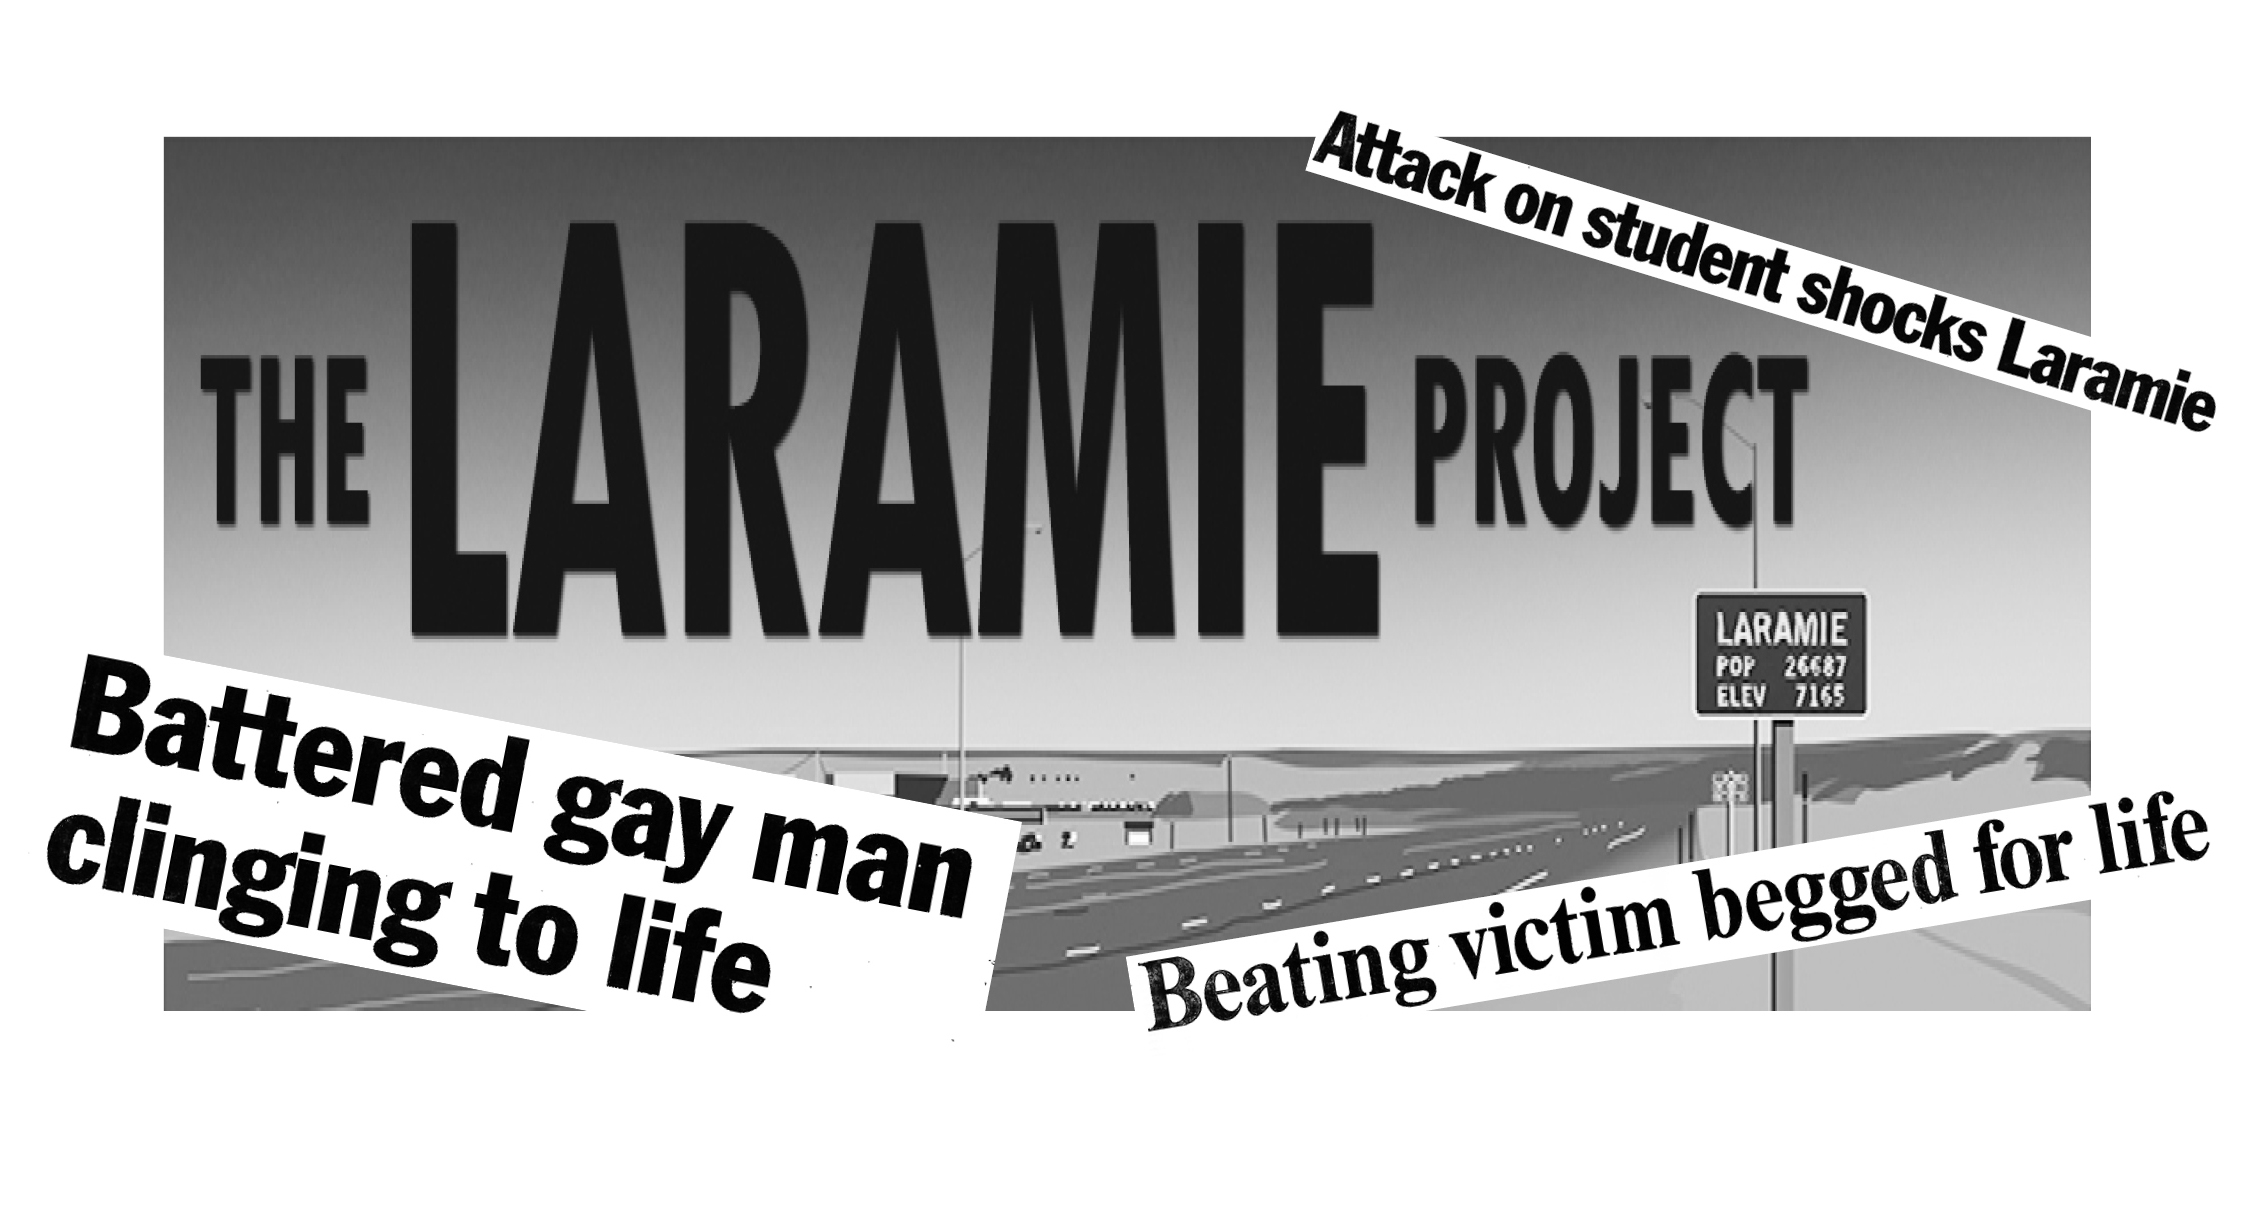 the laramie project essays The laramie project essays are academic essays for citation these papers were written primarily by students and provide critical analysis of the laramie project by moises kaufman.